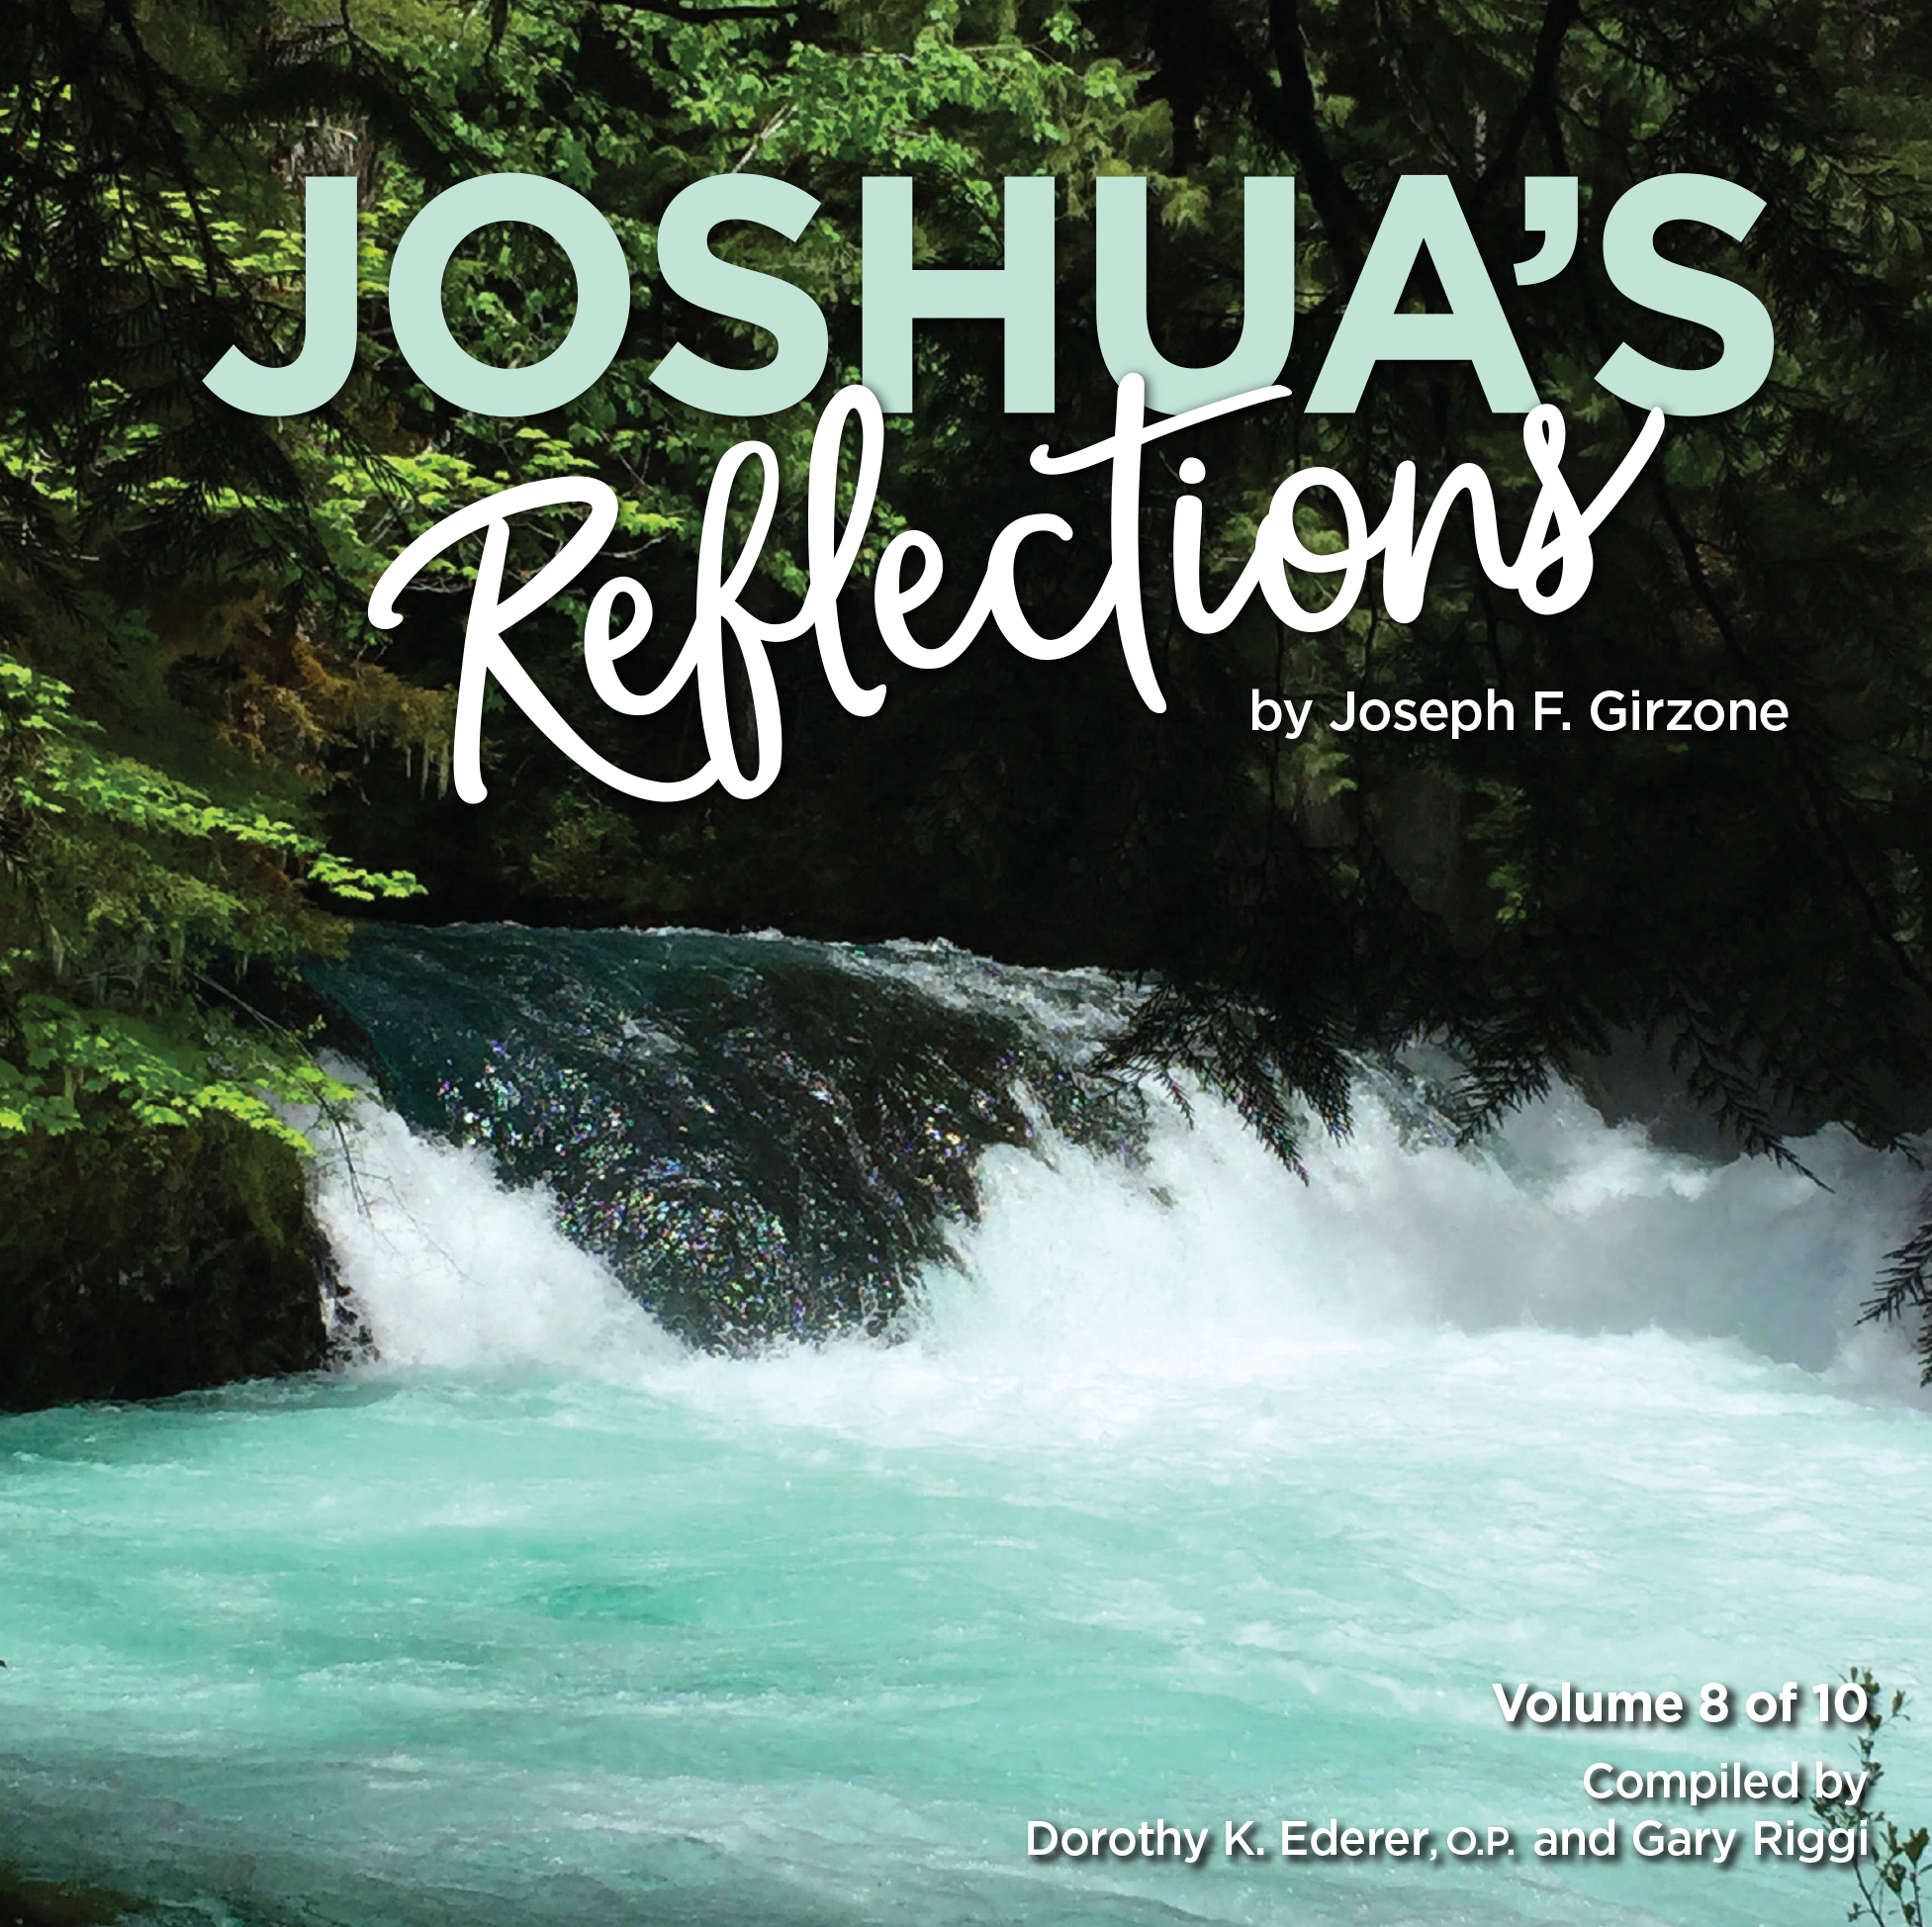 JoshuaReflections_Vol8_CoverPreview.jpg